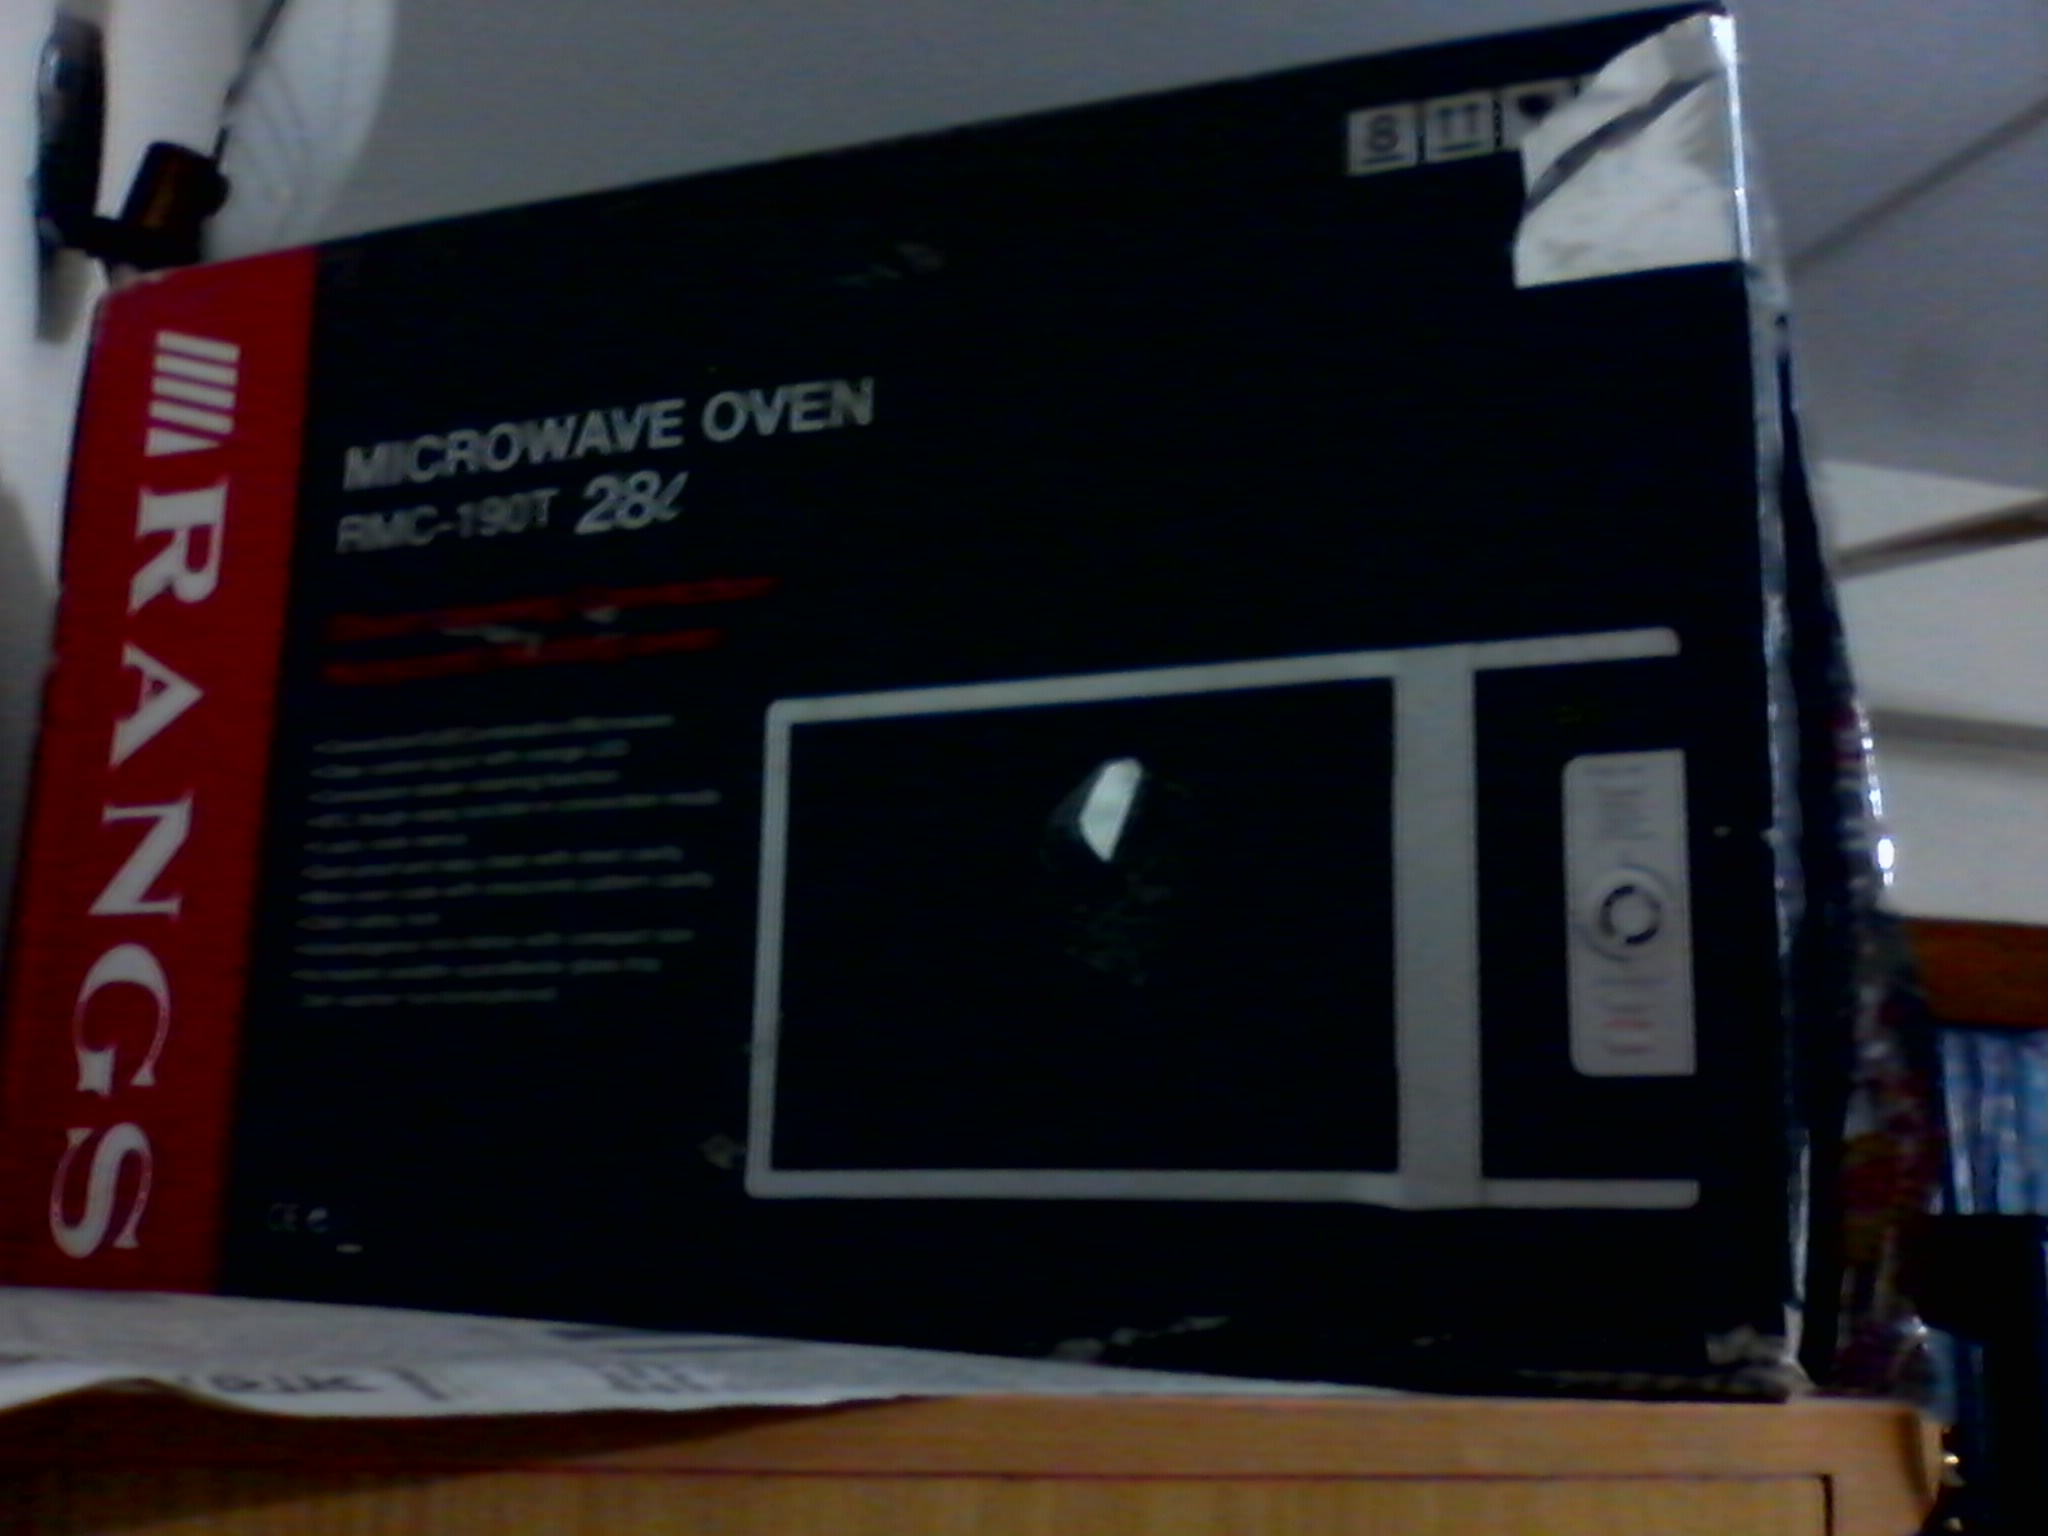 Rangs micro oven RMC 190t 28L | ClickBD large image 0